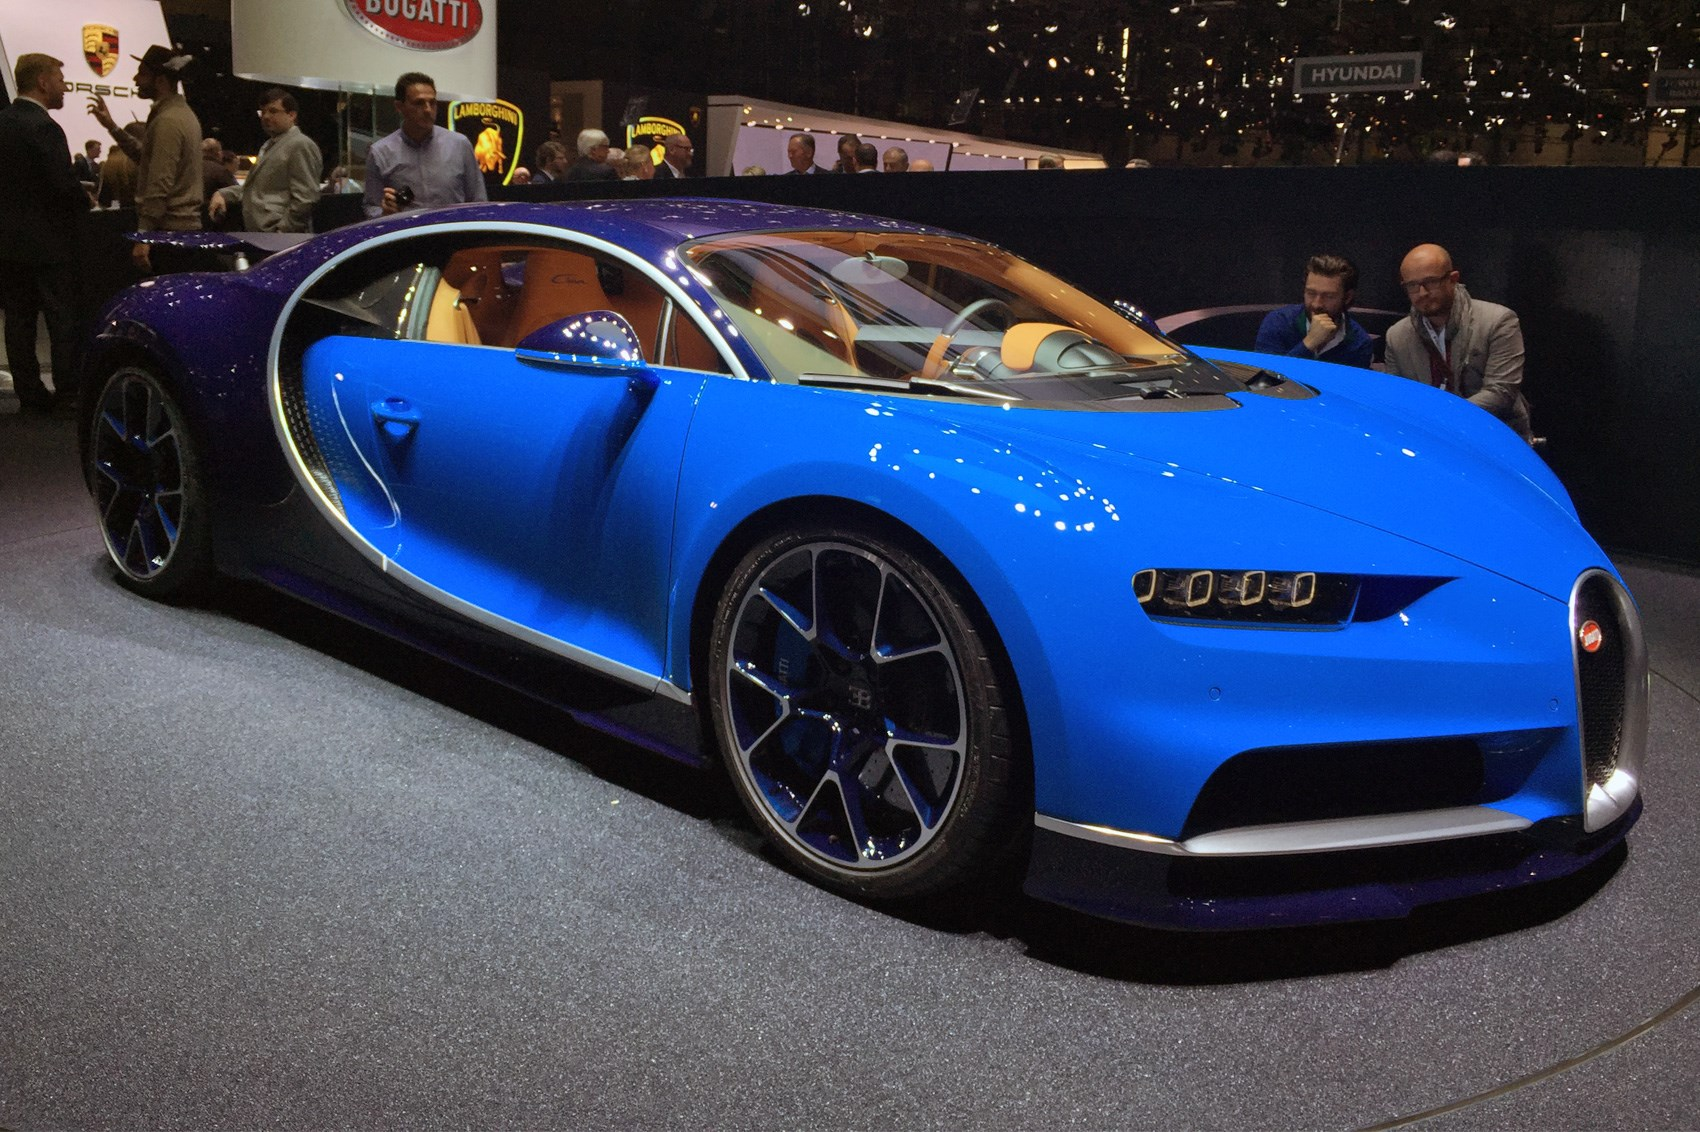 Ultrablogus  Scenic Bugatti Is Go New Chiron Name Confirmed Here At Geneva  By  With Licious Bugatti Chiron Revealed At Geneva  The World Has A New Fastest Production Car With Easy On The Eye  Cadillac Interior Also Honda City Interior In Addition H Hummer Interior And Interior Light Switch As Well As  Camaro Interior Parts Additionally  Gmc Sierra Interior From Carmagazinecouk With Ultrablogus  Licious Bugatti Is Go New Chiron Name Confirmed Here At Geneva  By  With Easy On The Eye Bugatti Chiron Revealed At Geneva  The World Has A New Fastest Production Car And Scenic  Cadillac Interior Also Honda City Interior In Addition H Hummer Interior From Carmagazinecouk